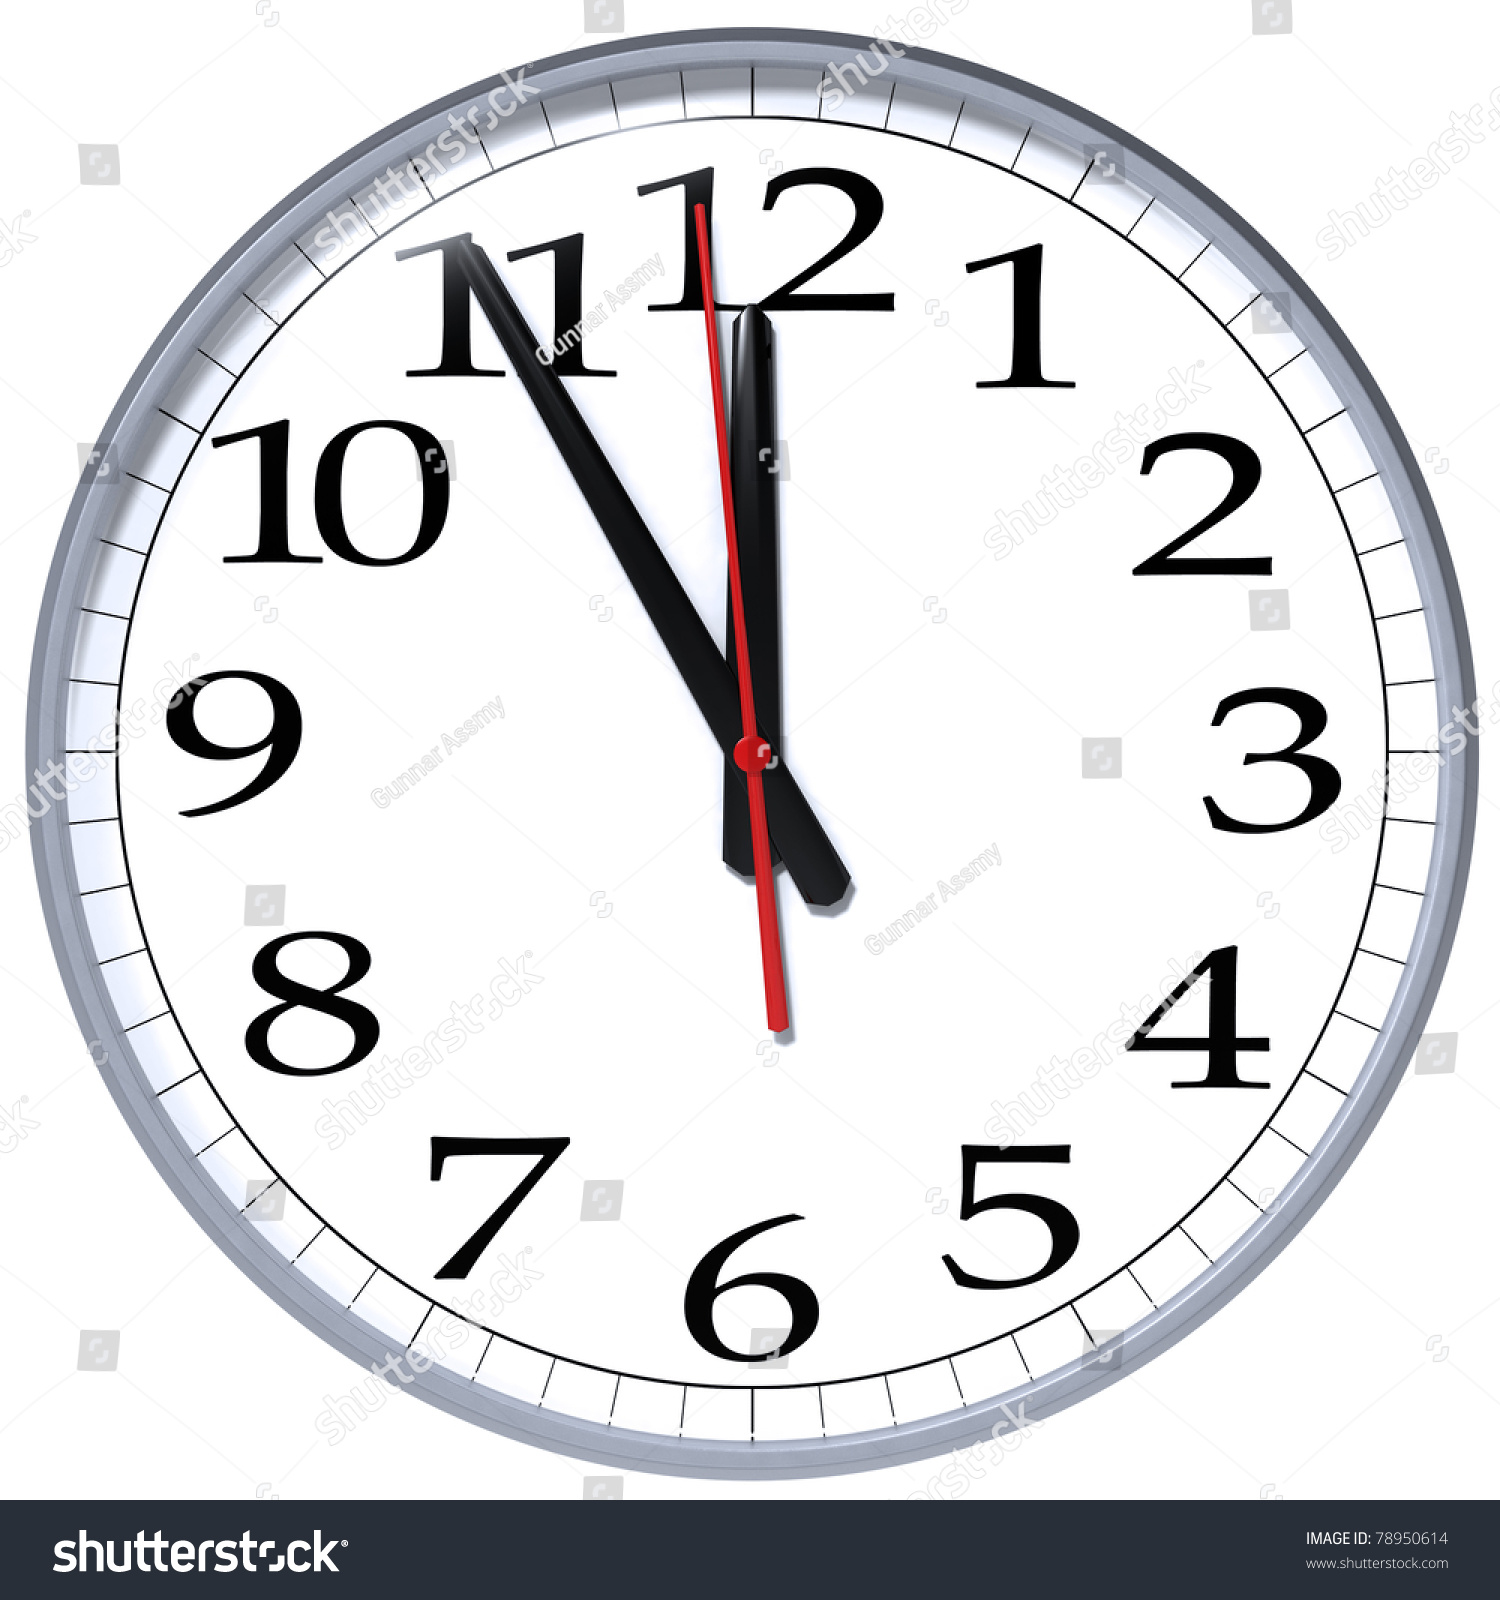 High Resolution The Hour Late Clock Stock Illustration 78950614 ...